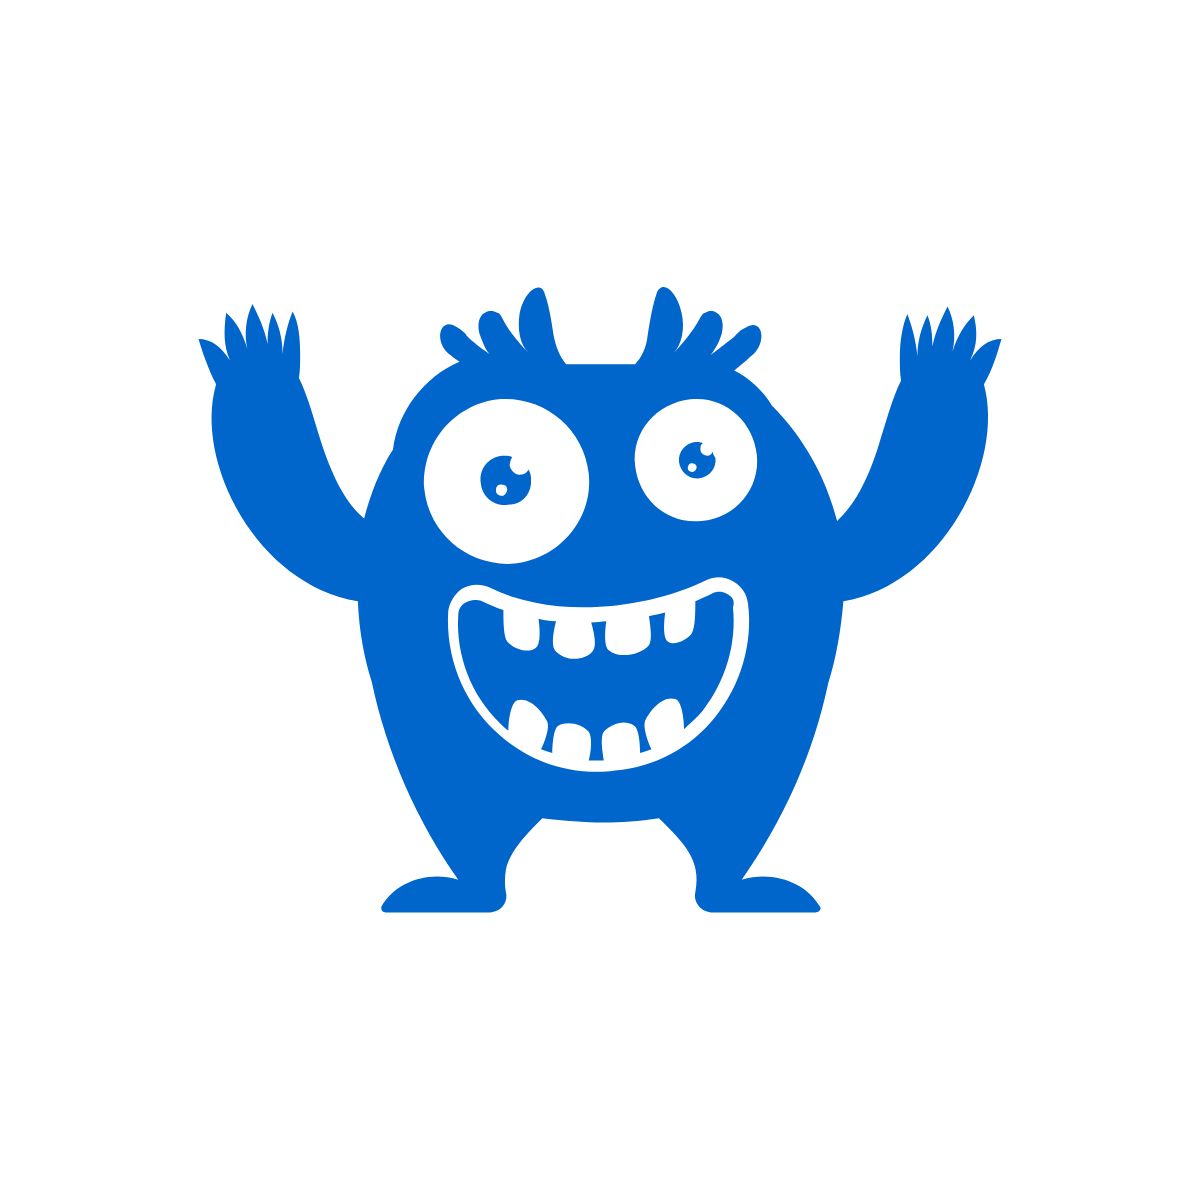 image of a silly monster with a big grin and its arms in the air